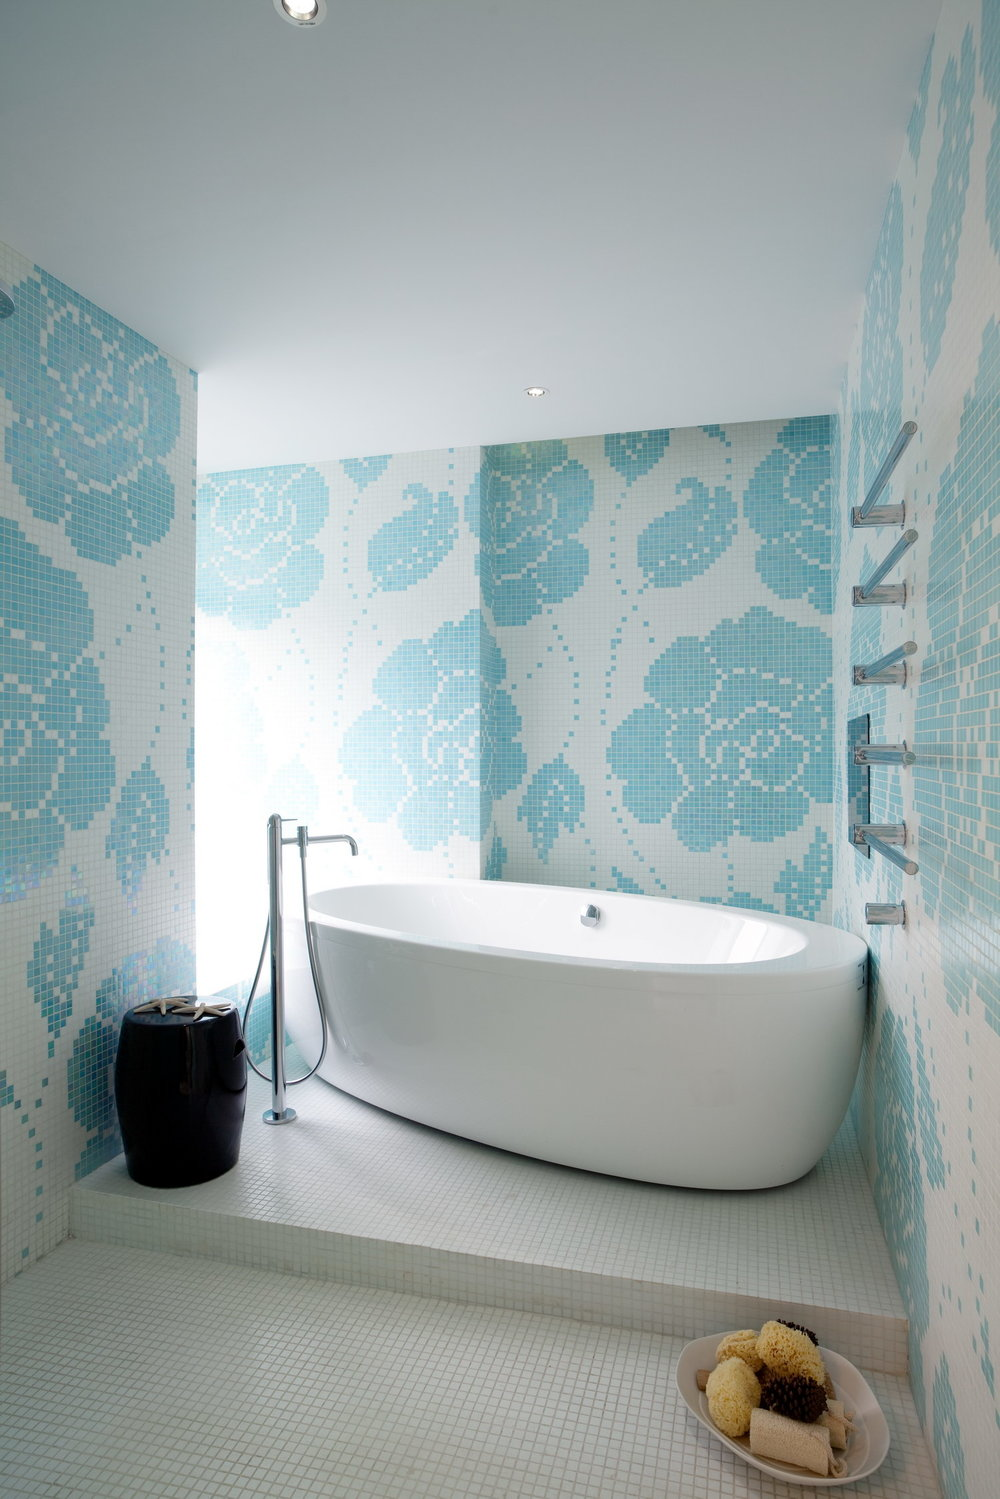 BATHROOM Bisazza mosaic tiles and Laufen bathtub